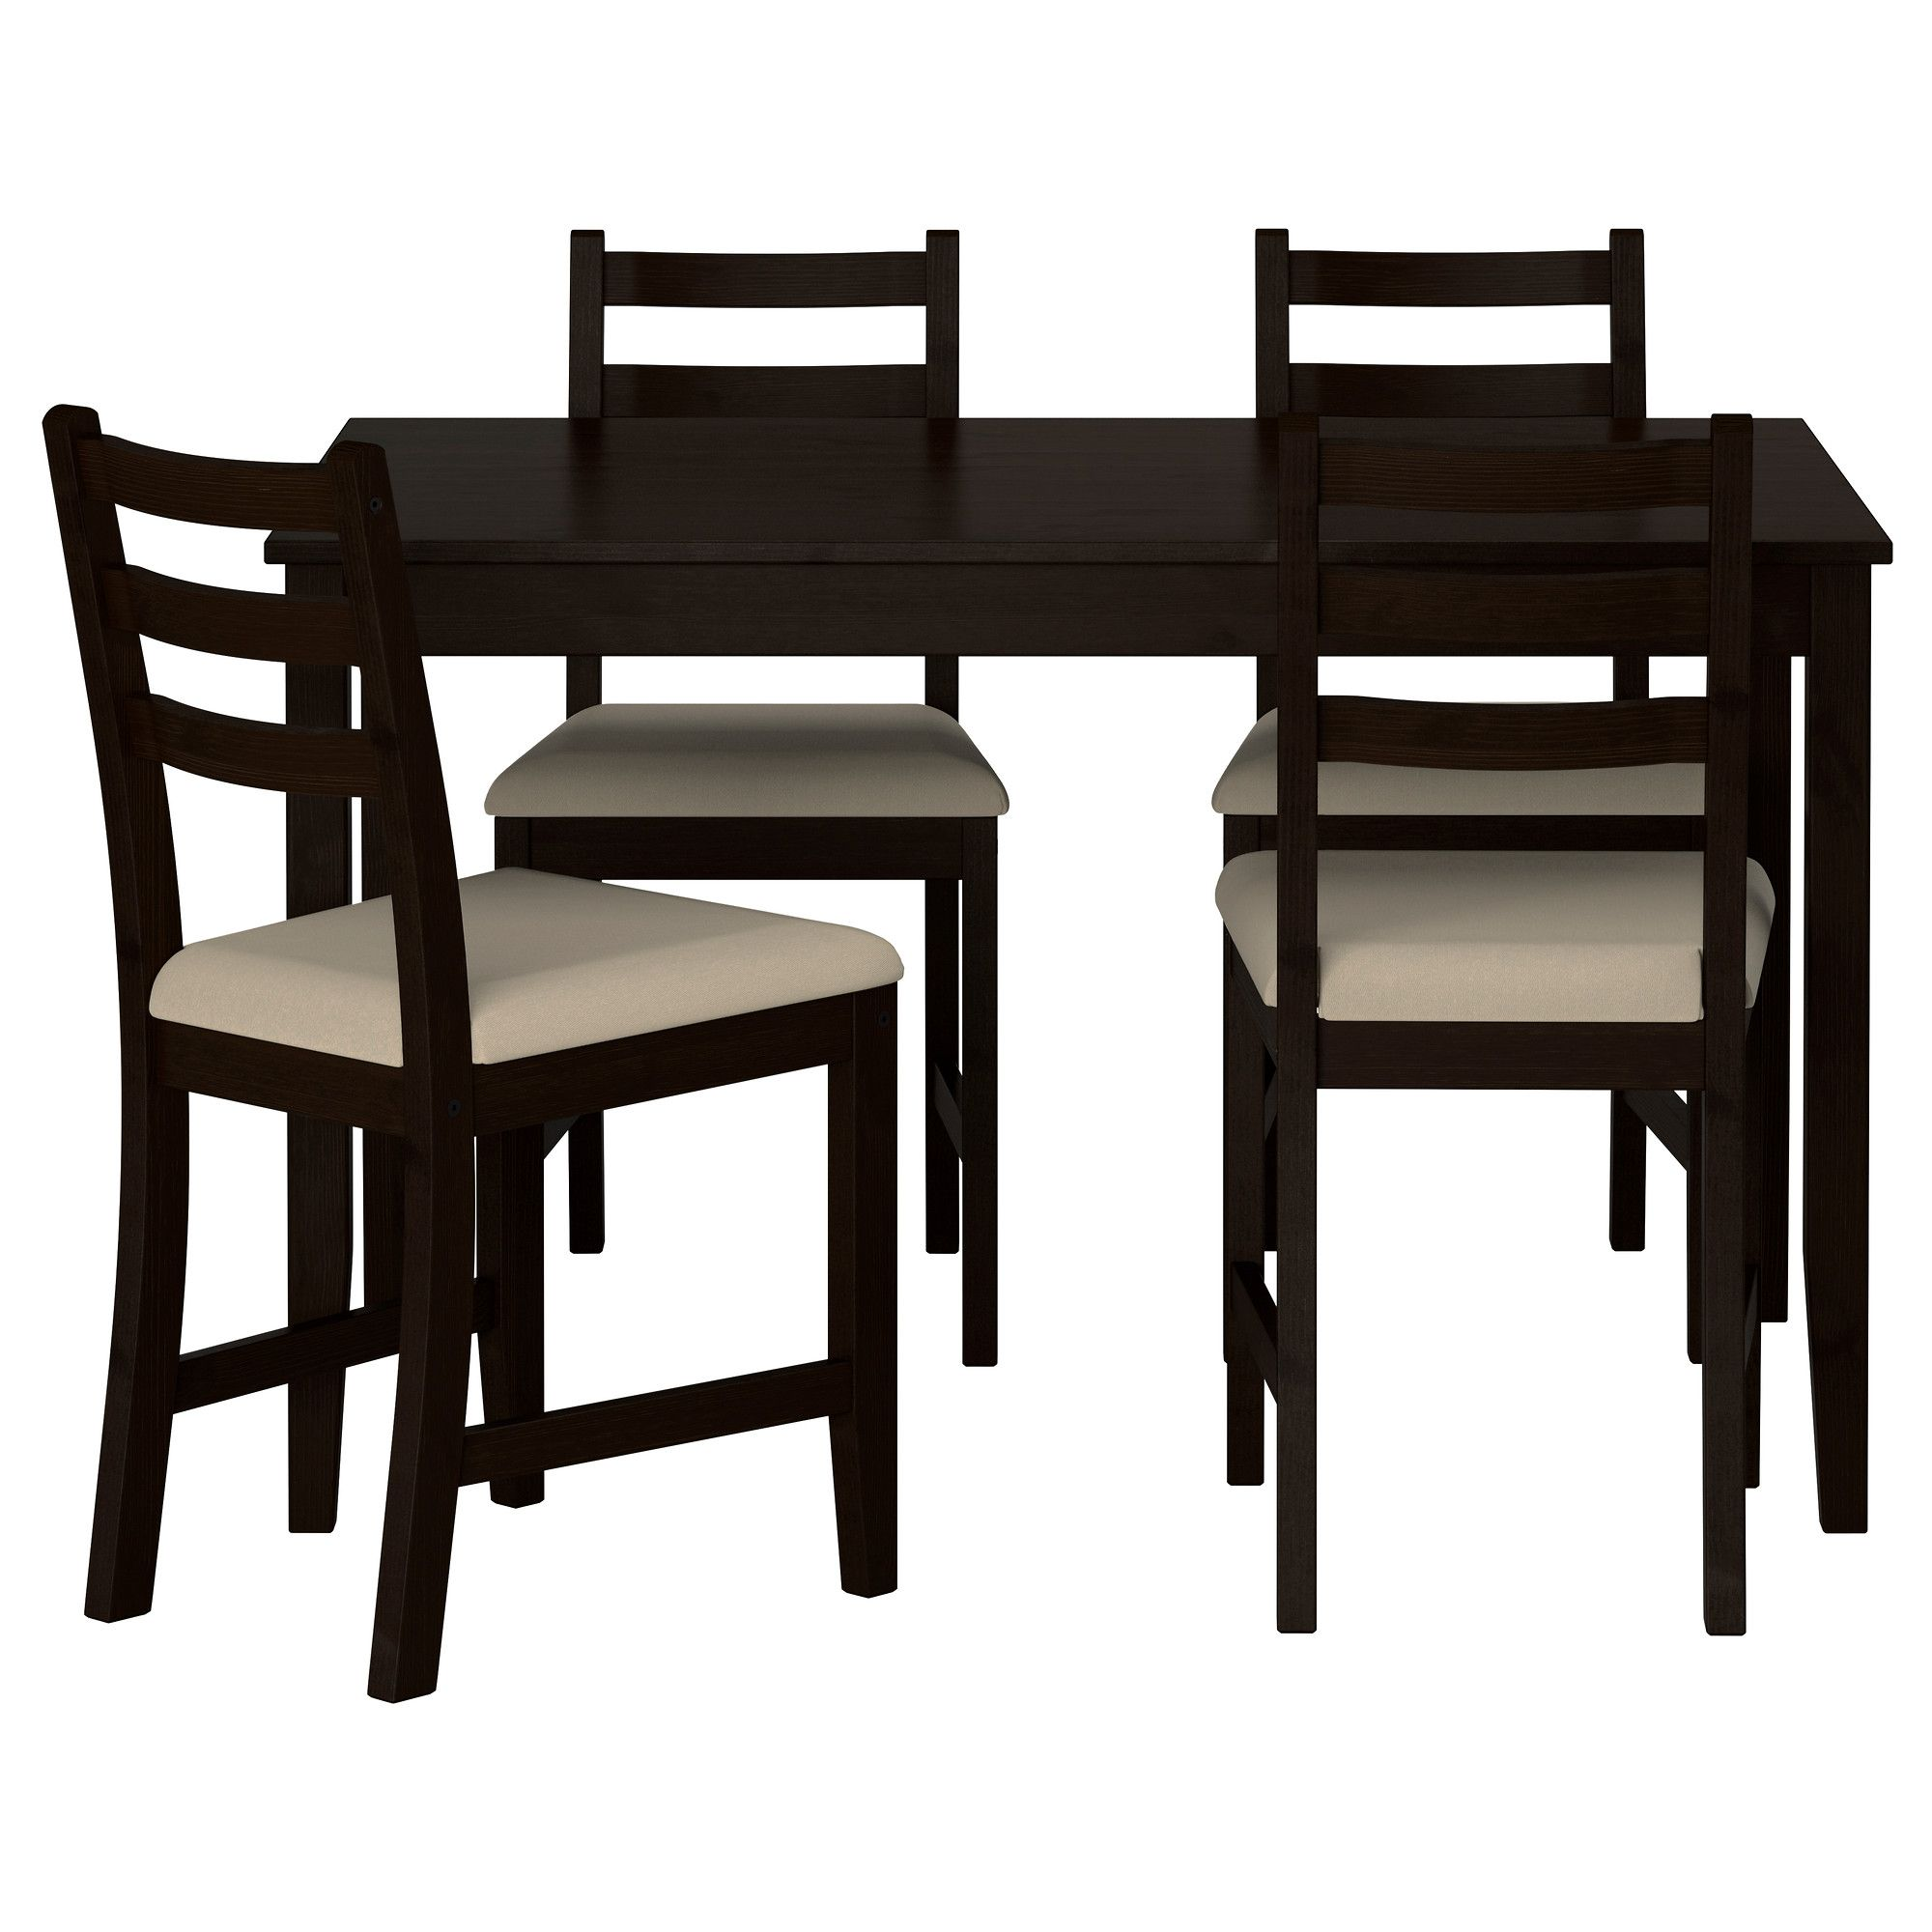 IKEA - LERHAMN Table and 4 chairs black-brown, Vittaryd beige | Ikea ...